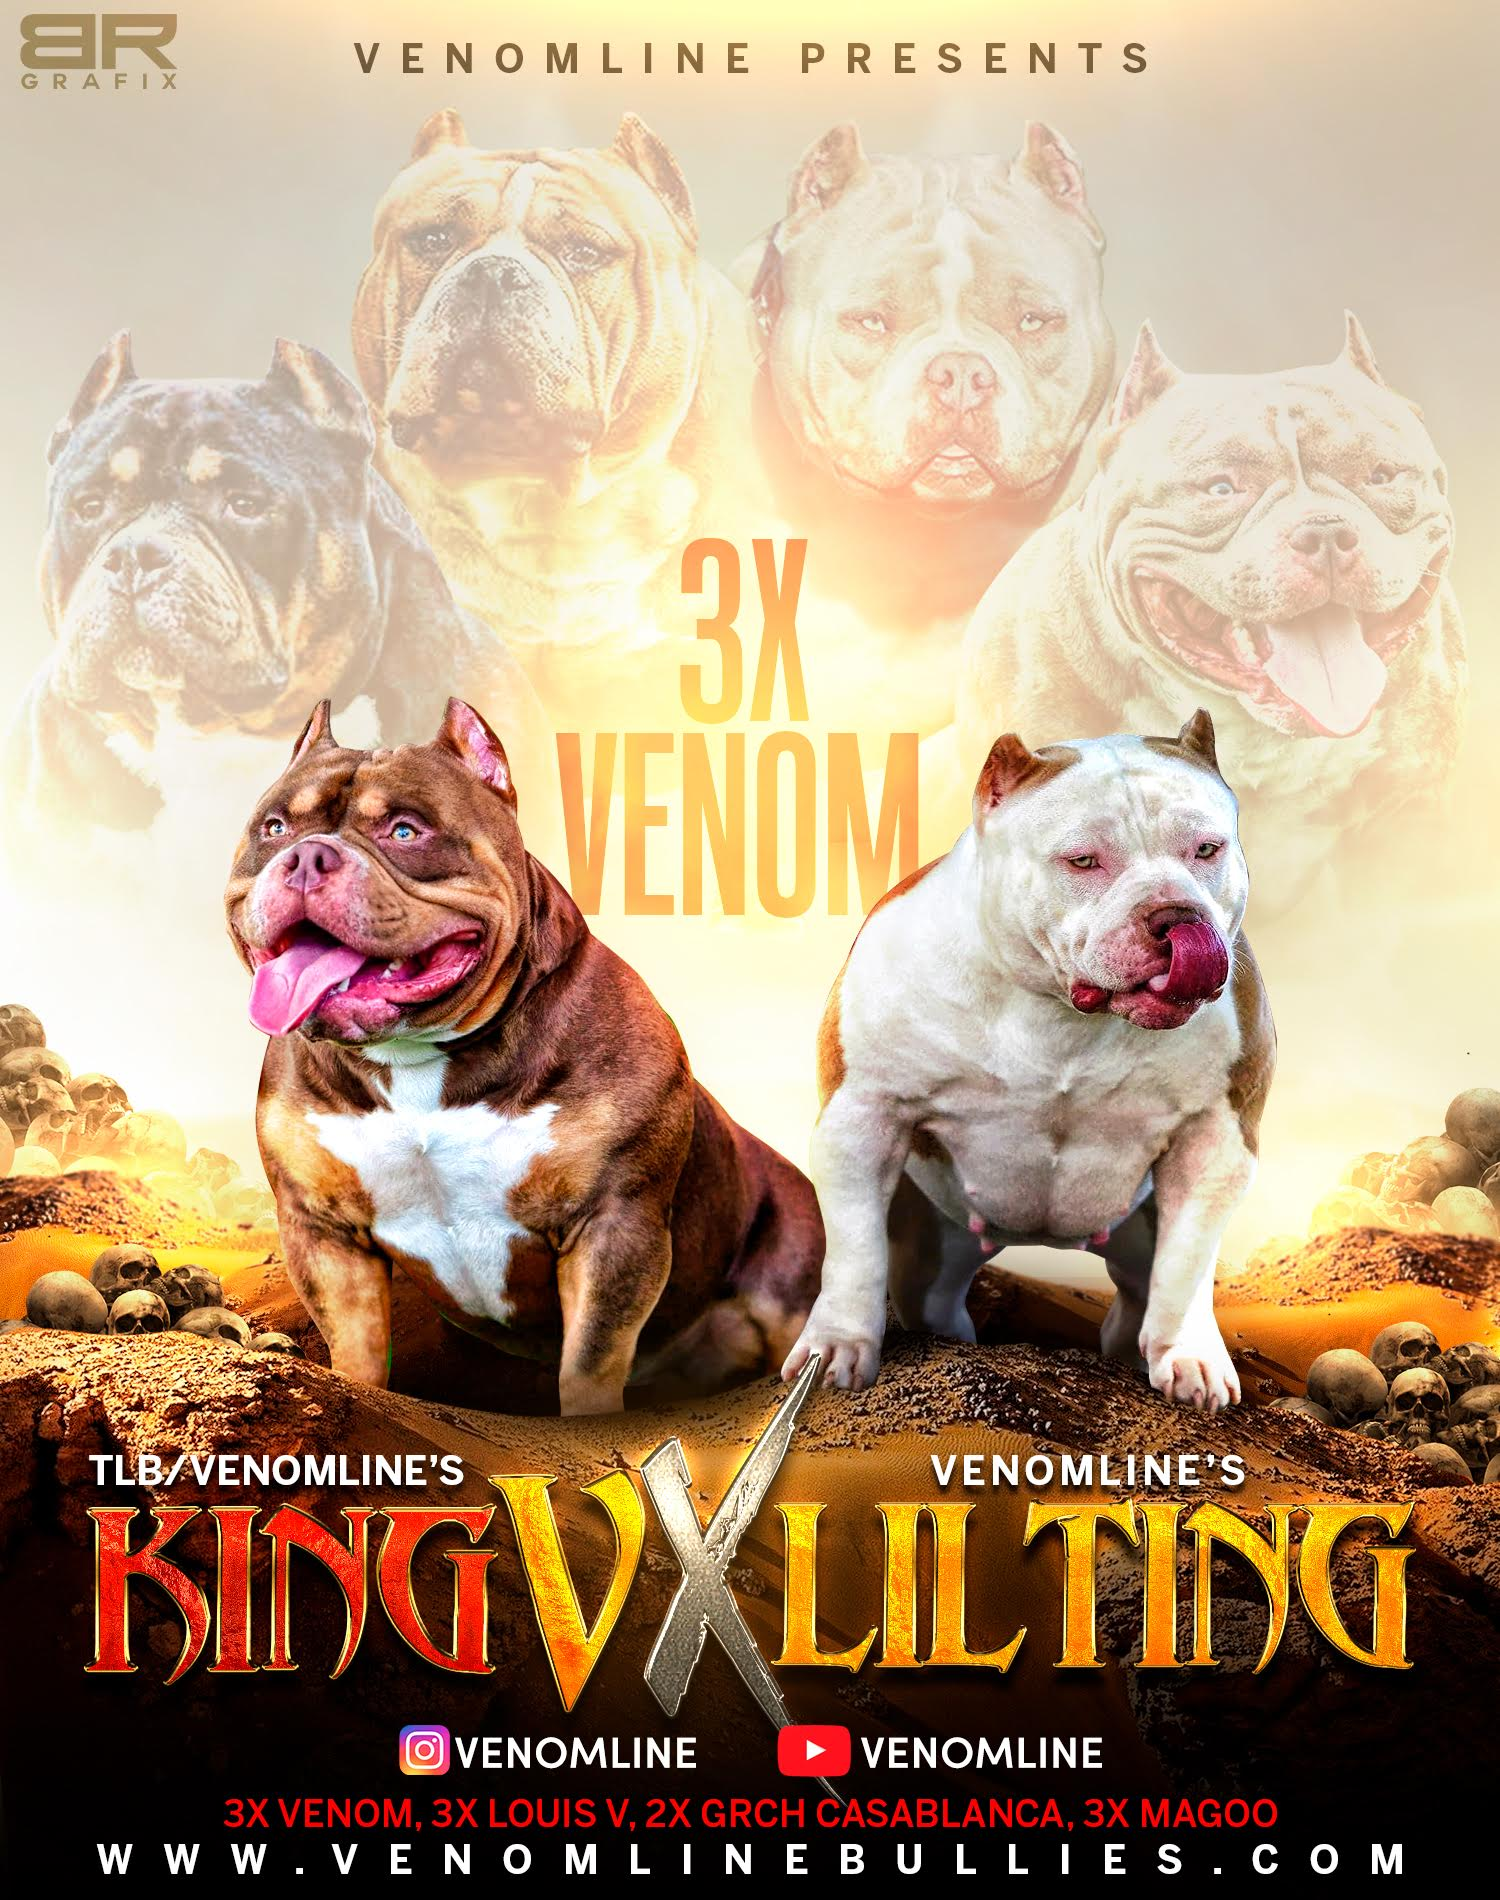 Top American Bully Bloodlines, Best Breeders, Top Kennels, Venomline Pocket Bully, Tri Color Puppies for sale